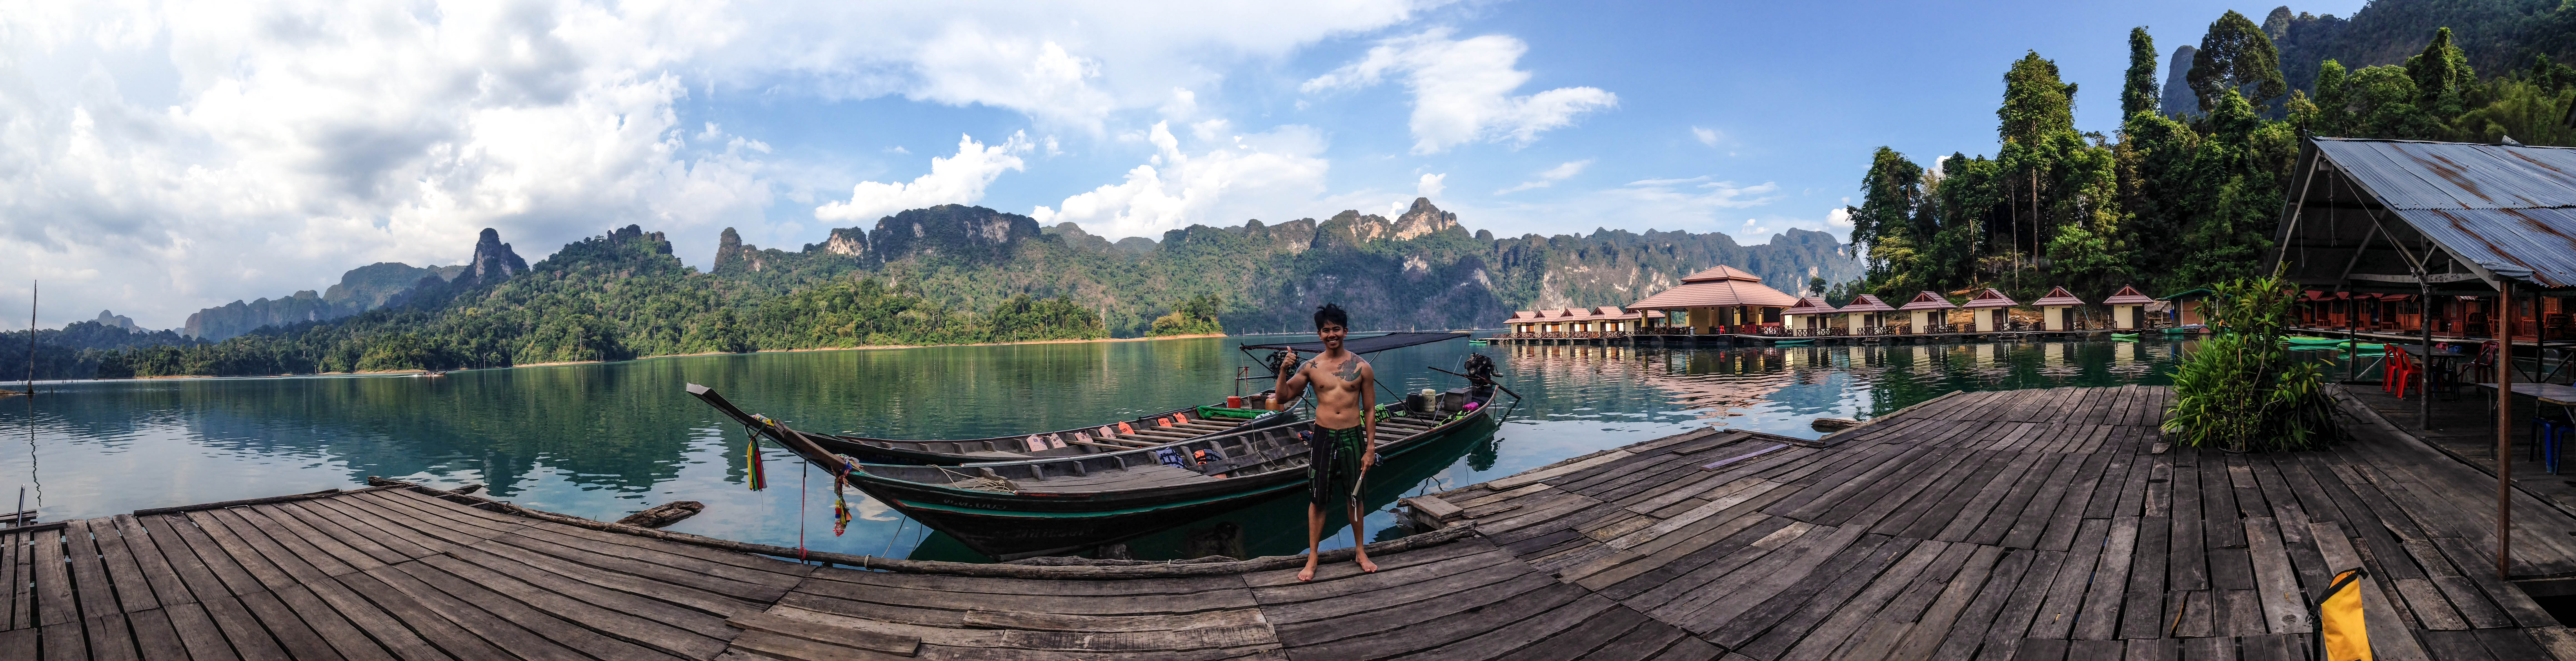 boy standing in front of raft houses.